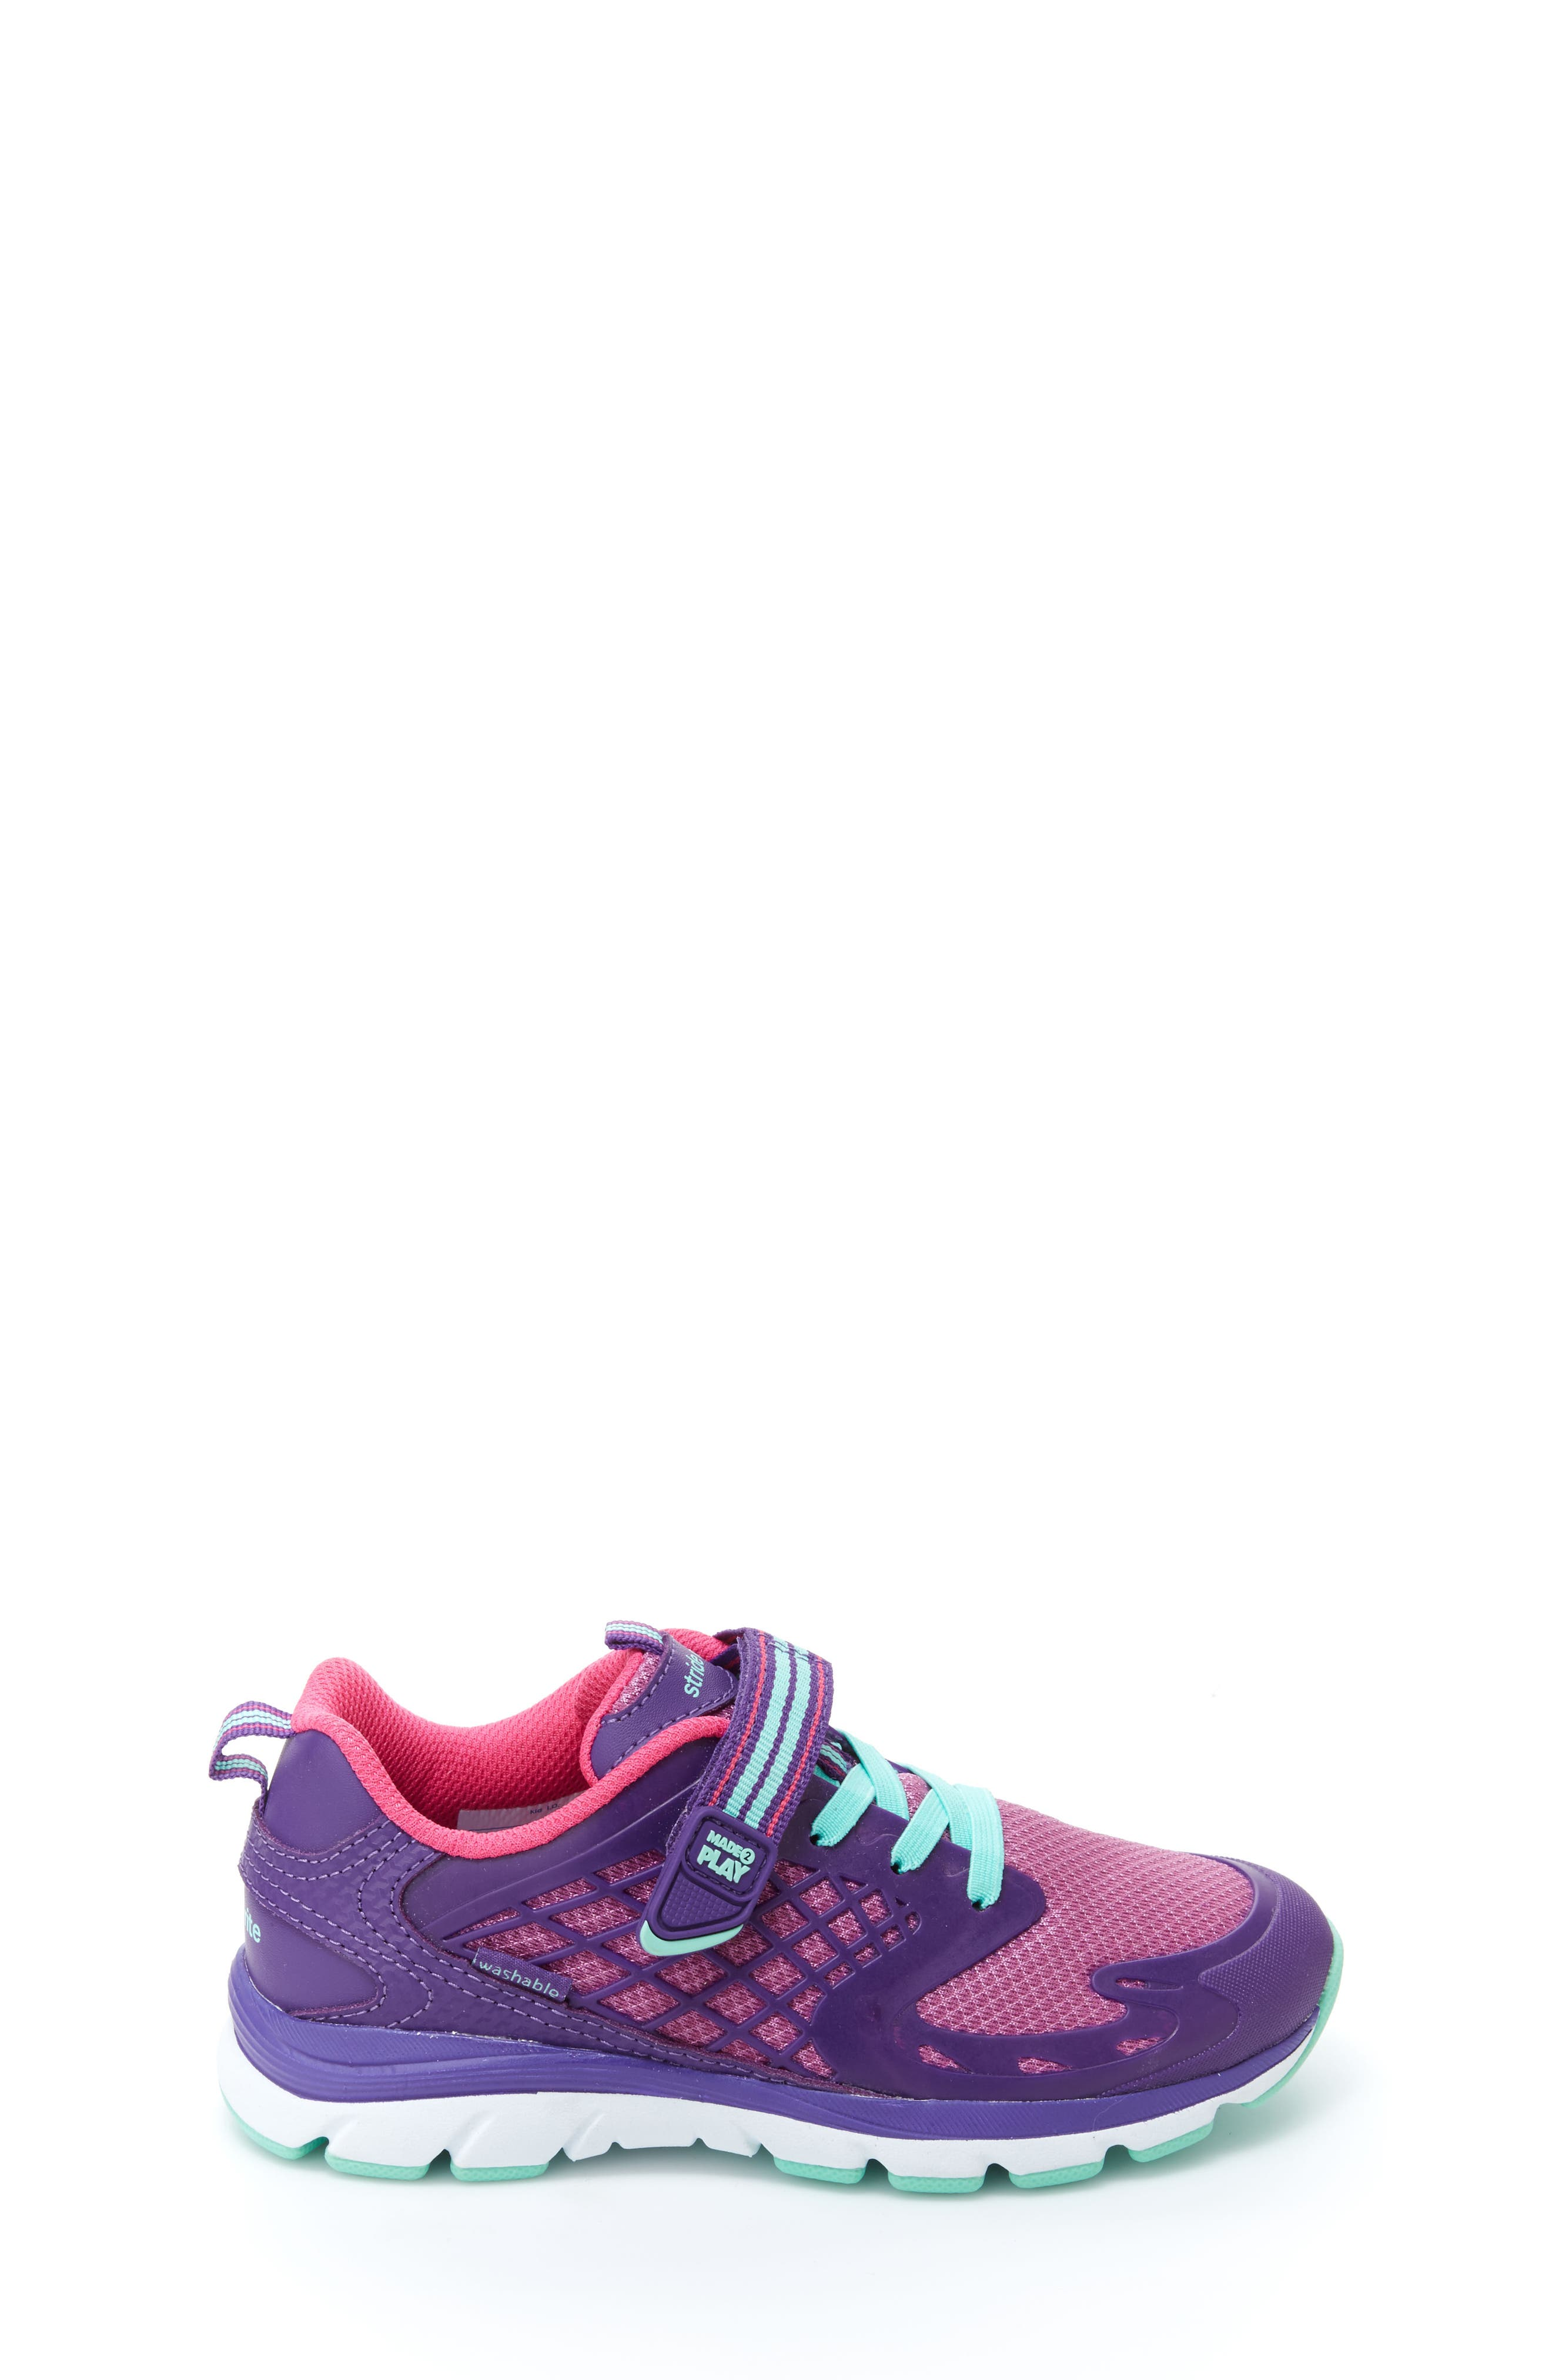 'Made2Play<sup>®</sup> Cannan Lace' Sneaker,                             Alternate thumbnail 3, color,                             500